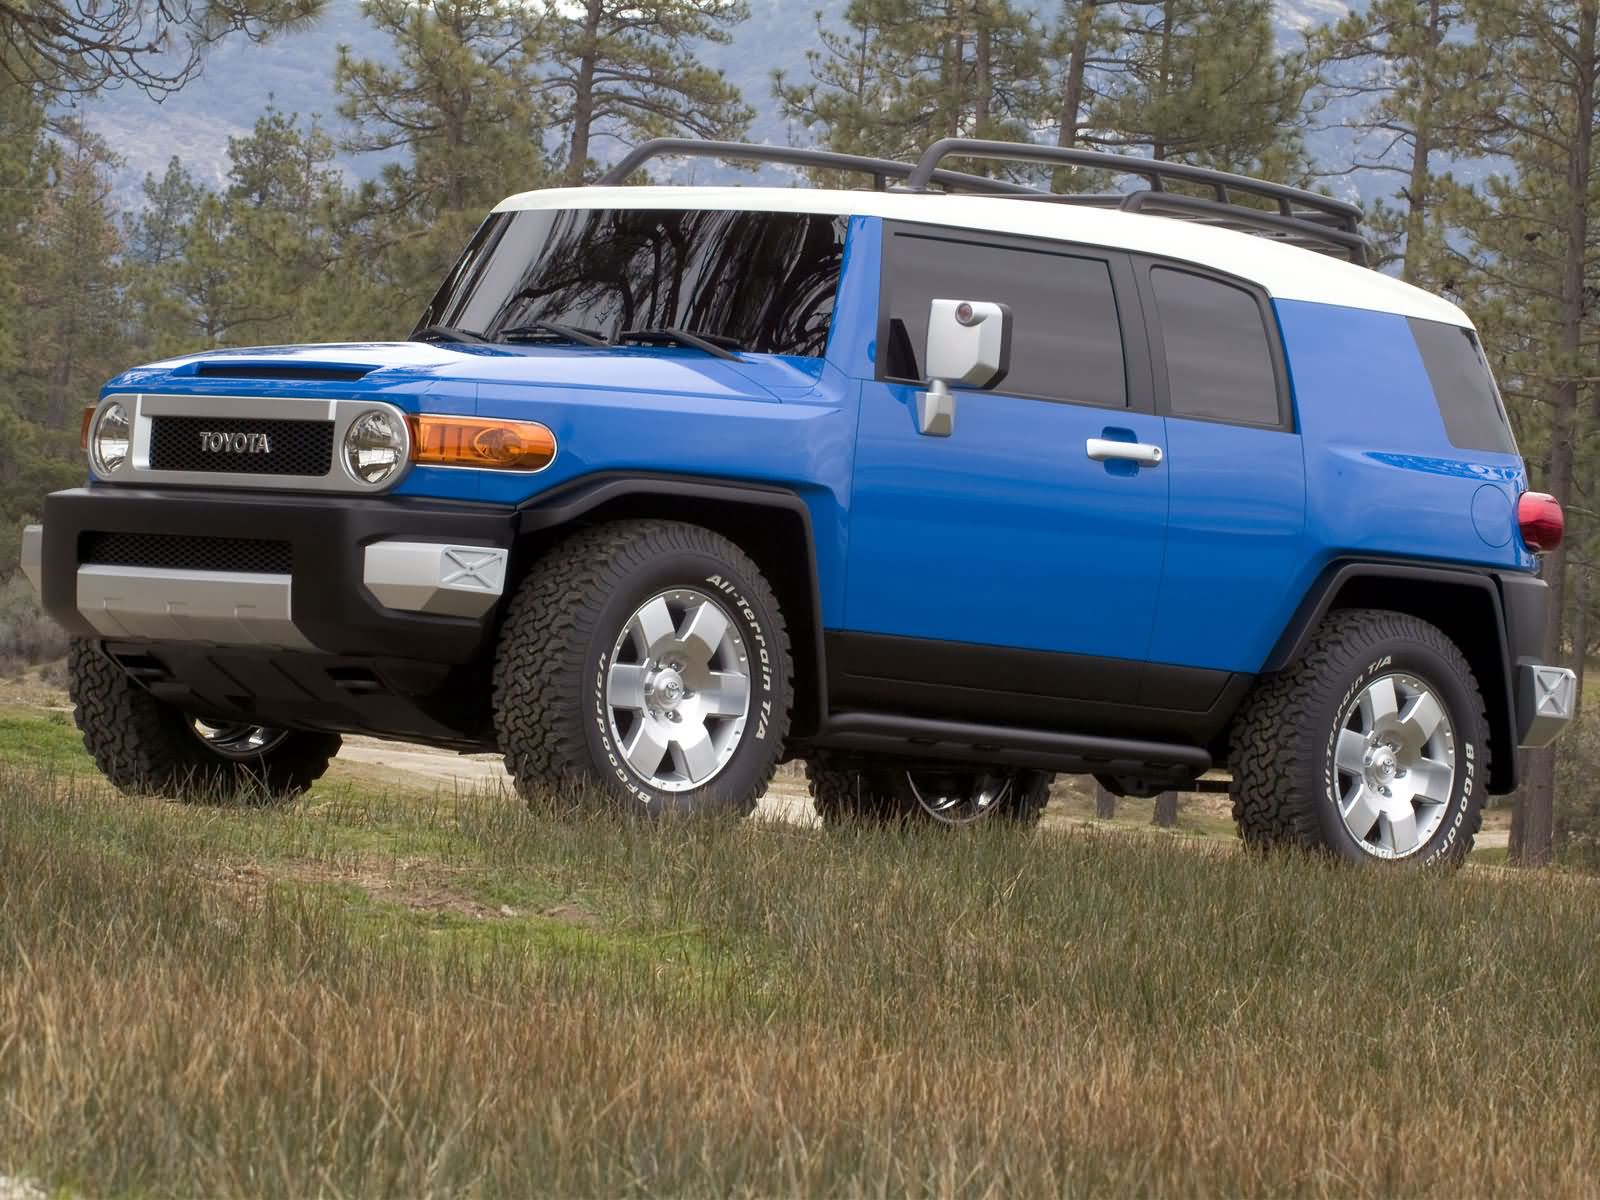 Toyota FJ Cruiser photo 21022